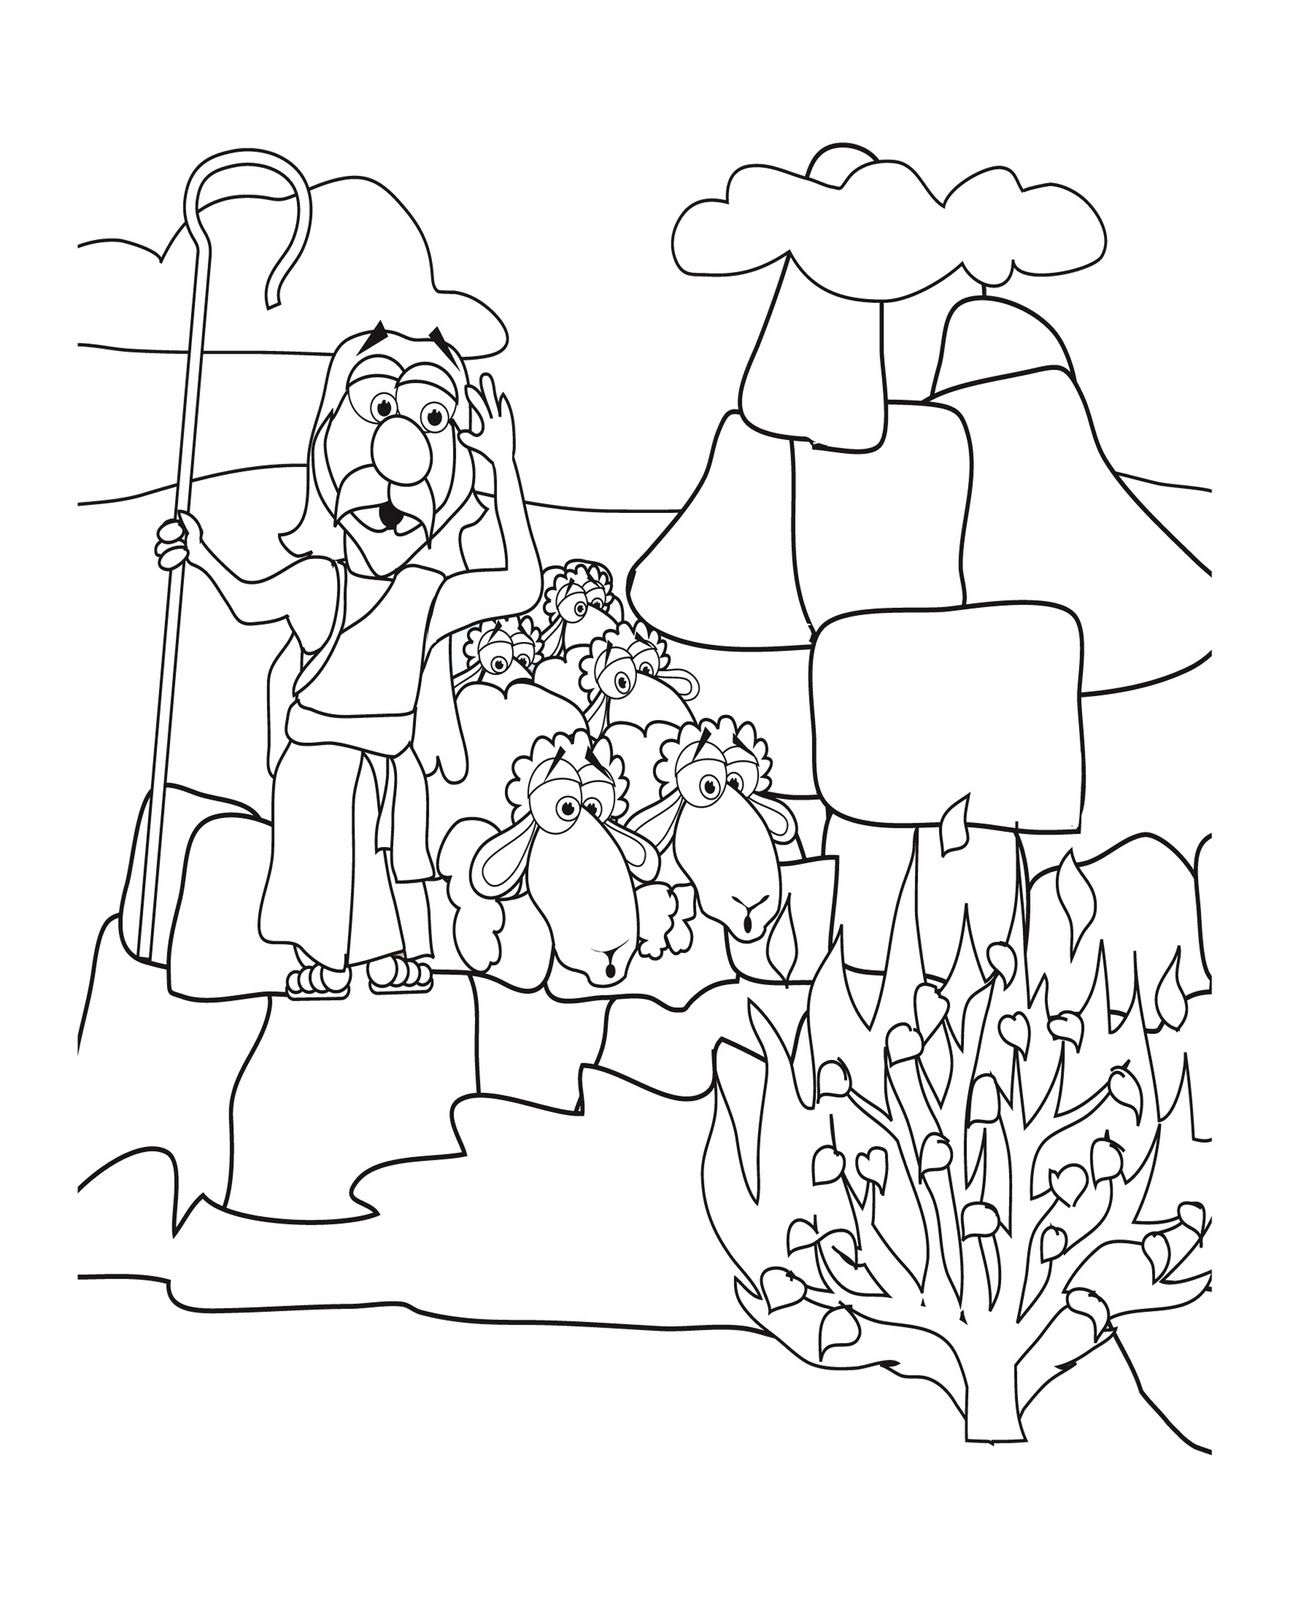 The Exodus Coloring page | Coloring pages, Butterfly coloring page ... | 1600x1309